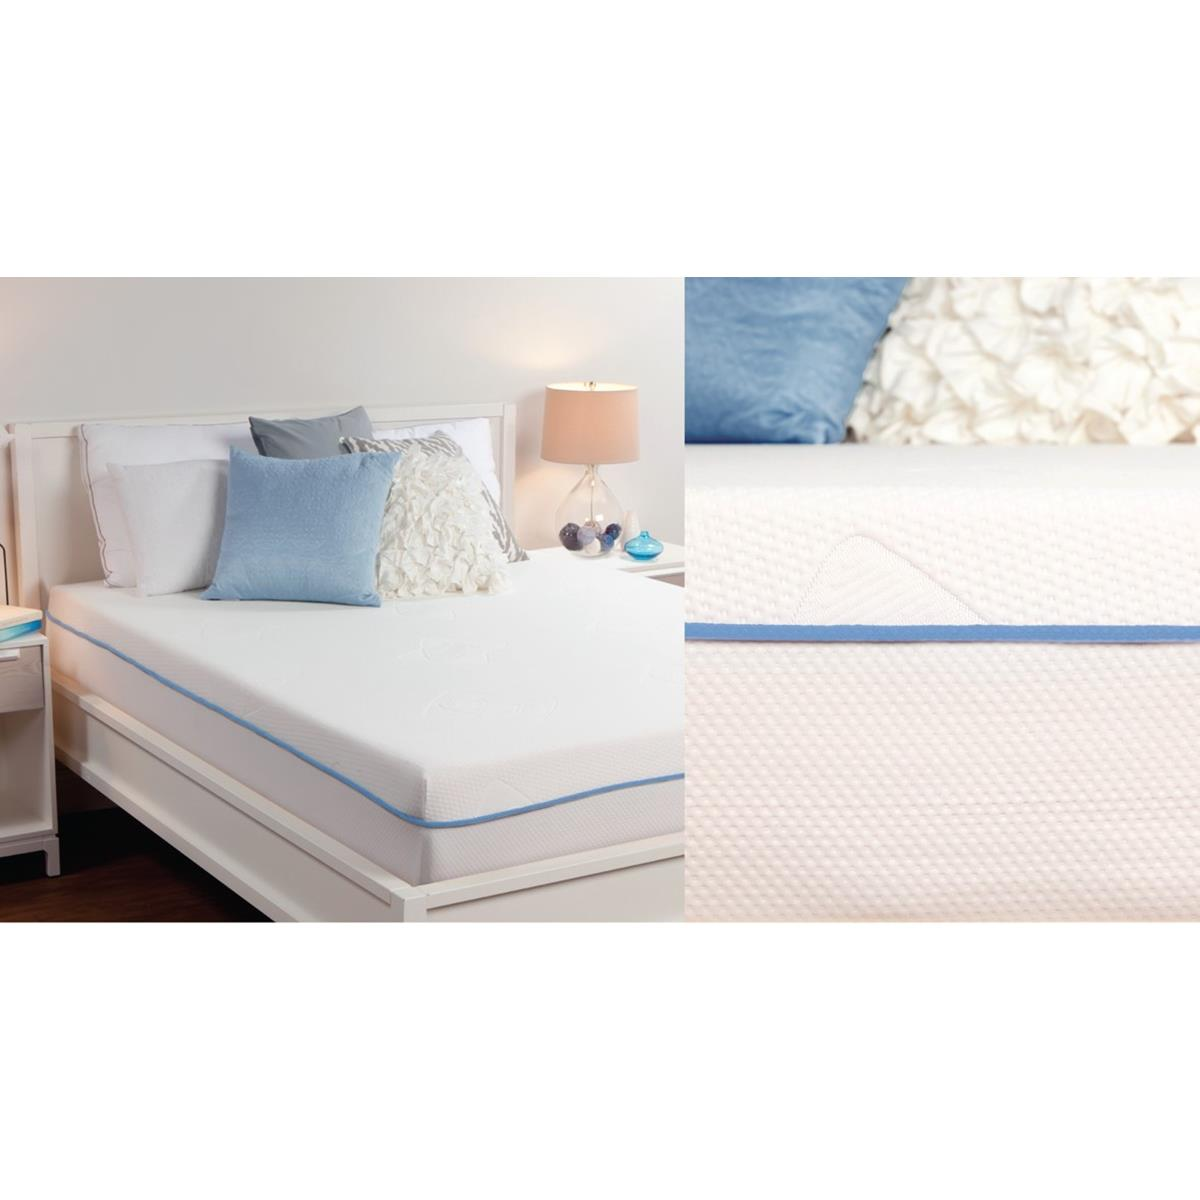 Sealy 8 Inch Premium Memory Foam Mattress With Cover Cal King by Comfort Revolution